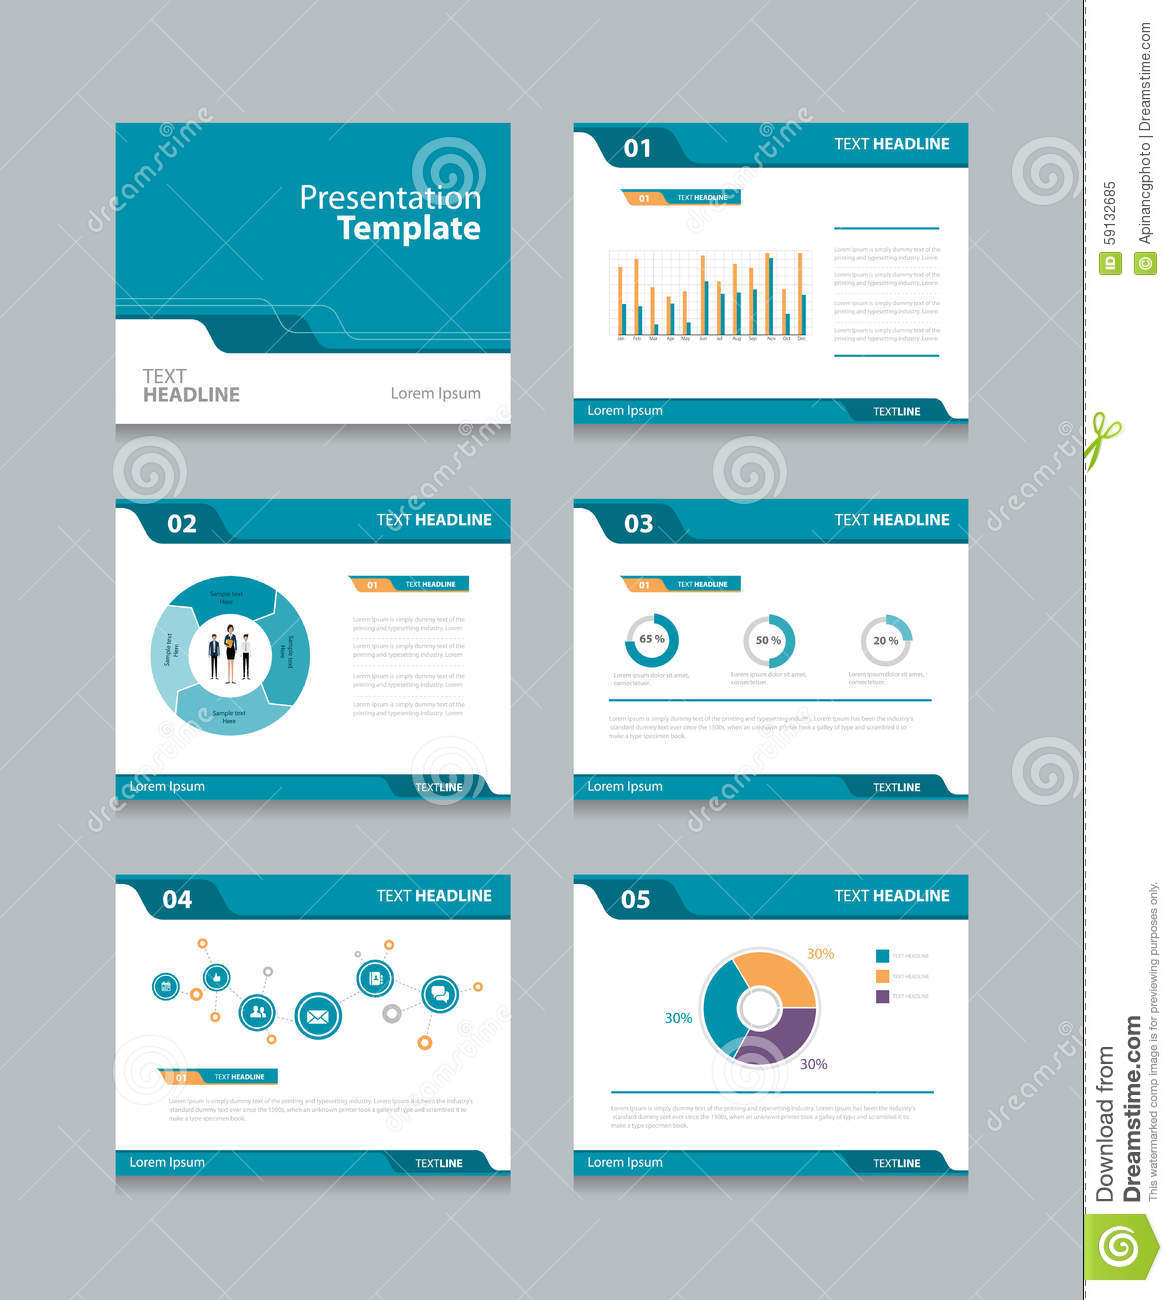 vector template presentation slides background design info graphs